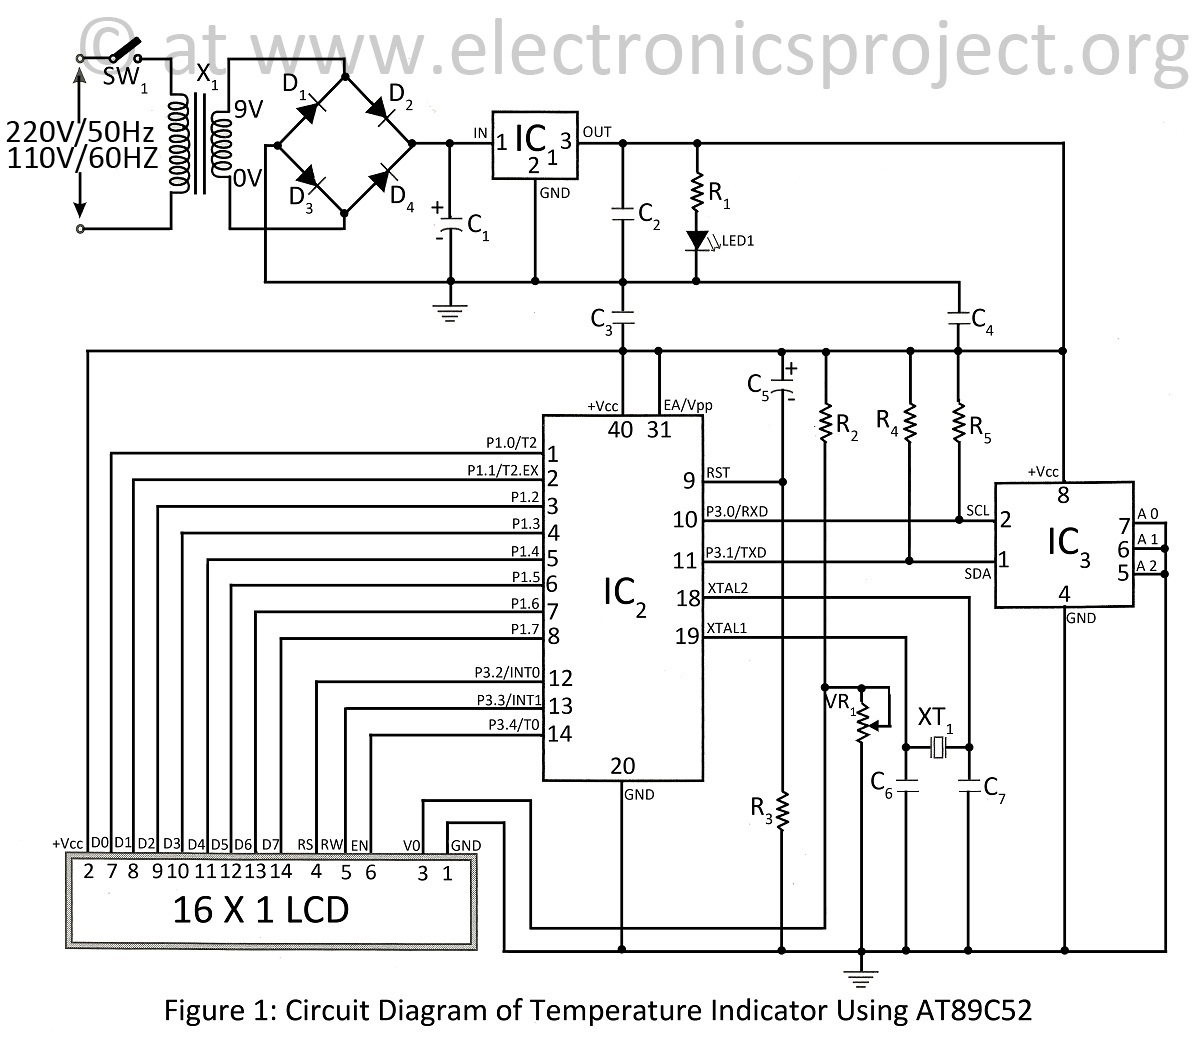 temperature controller wiring diagram Collection-circuit diagram of temperature indicator using at89c52 11-n